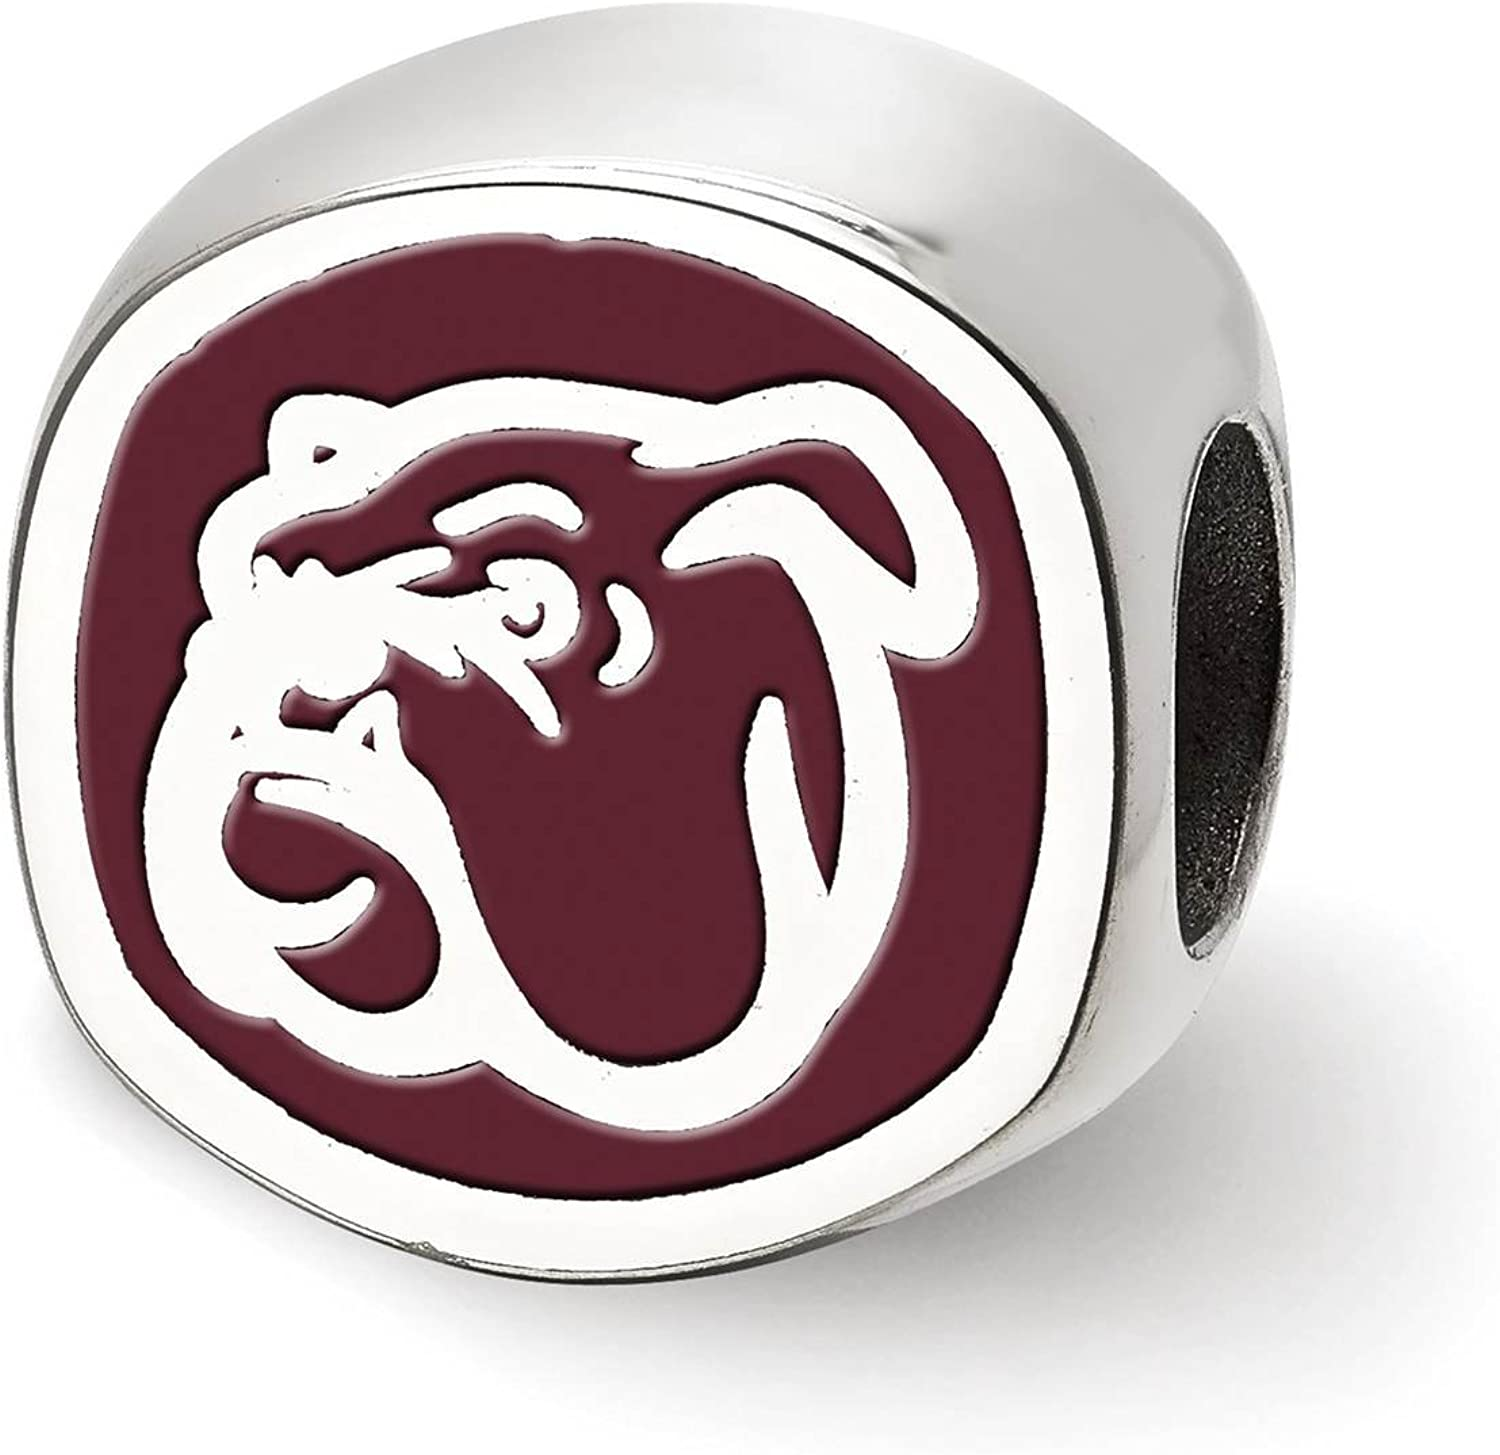 925 Silver Rhodium-plated Laser-cut Mississippi State University Cushion Shaped Double Logo Bead Charm